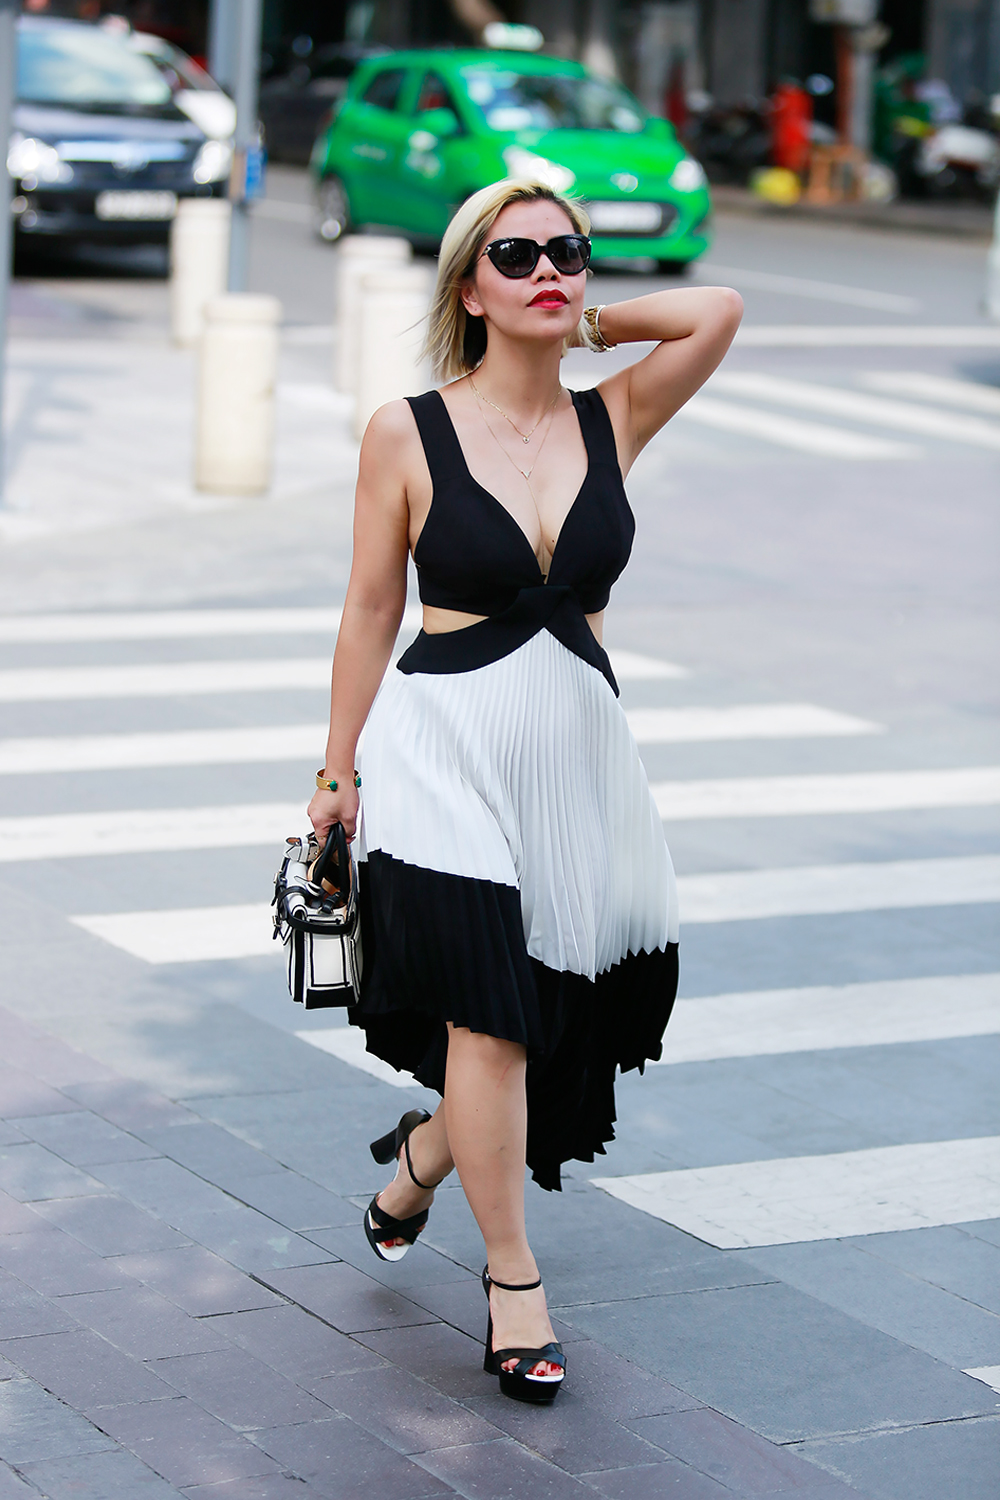 Crystal Phuong in Vietnam Fashion Week- Streetstyle